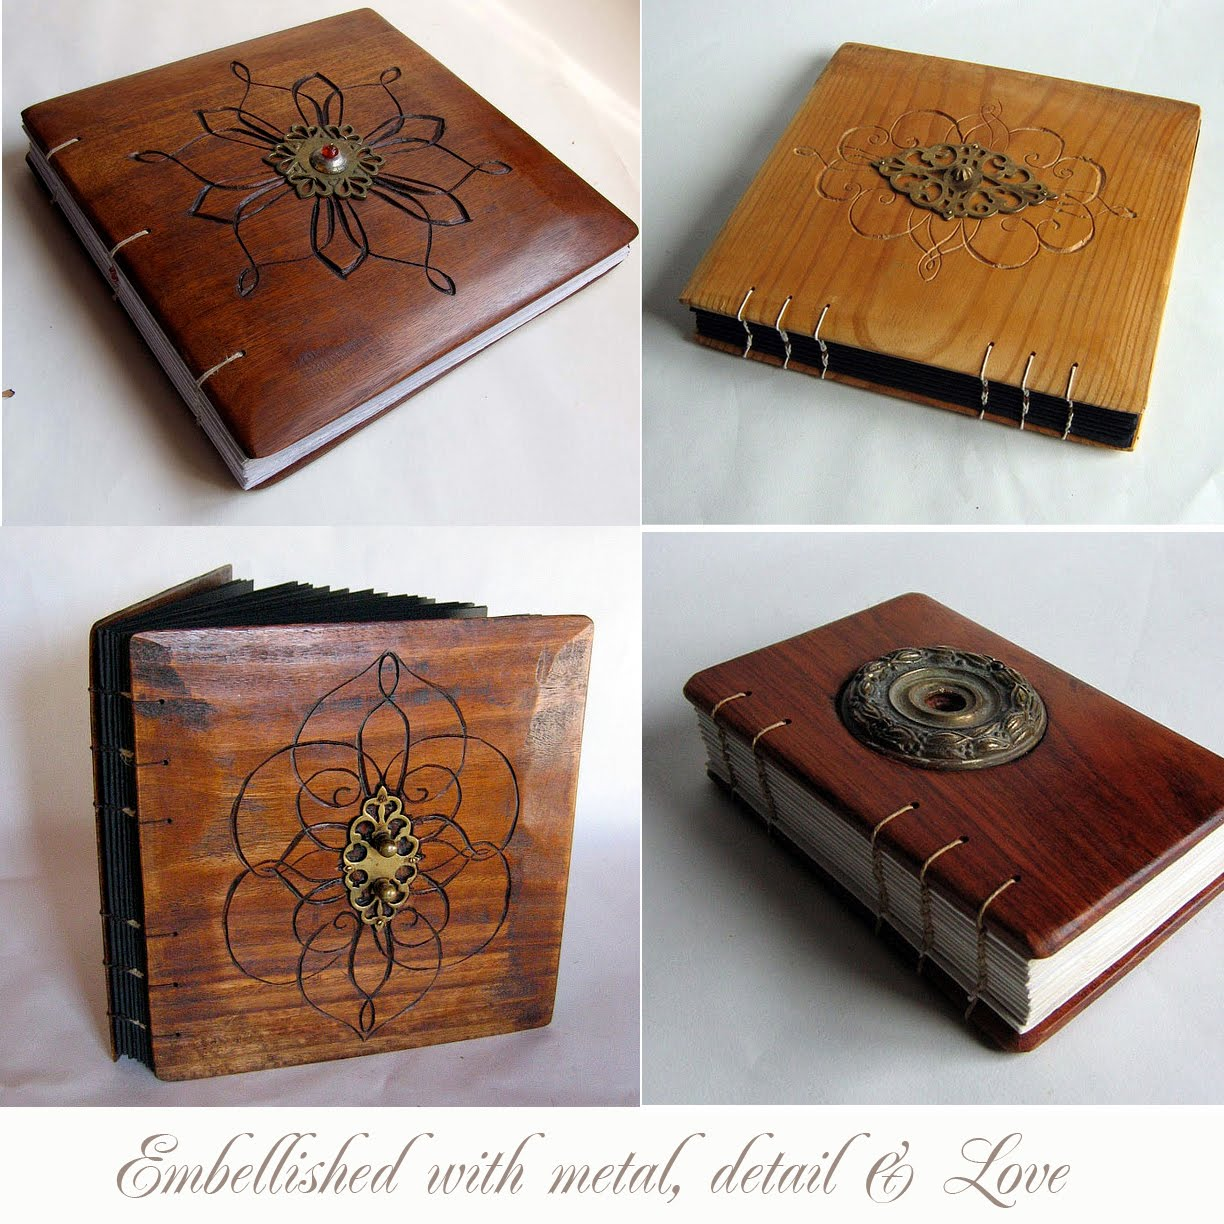 Wood Cover Cookbook : Artnlight wooden book covers by lacuna works